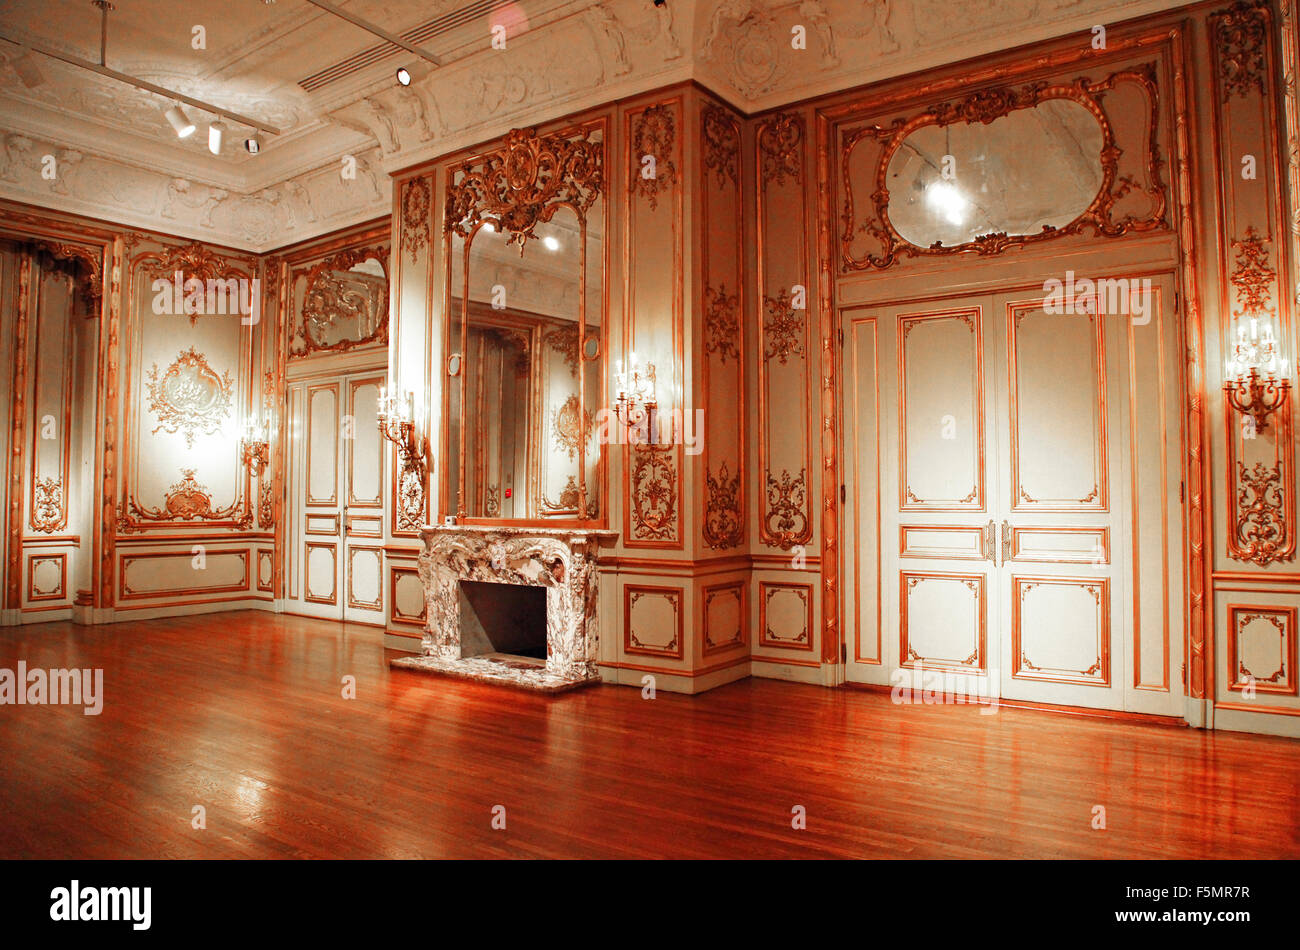 Marble Fireplace in Baroque inspired room in the galleries of the ...